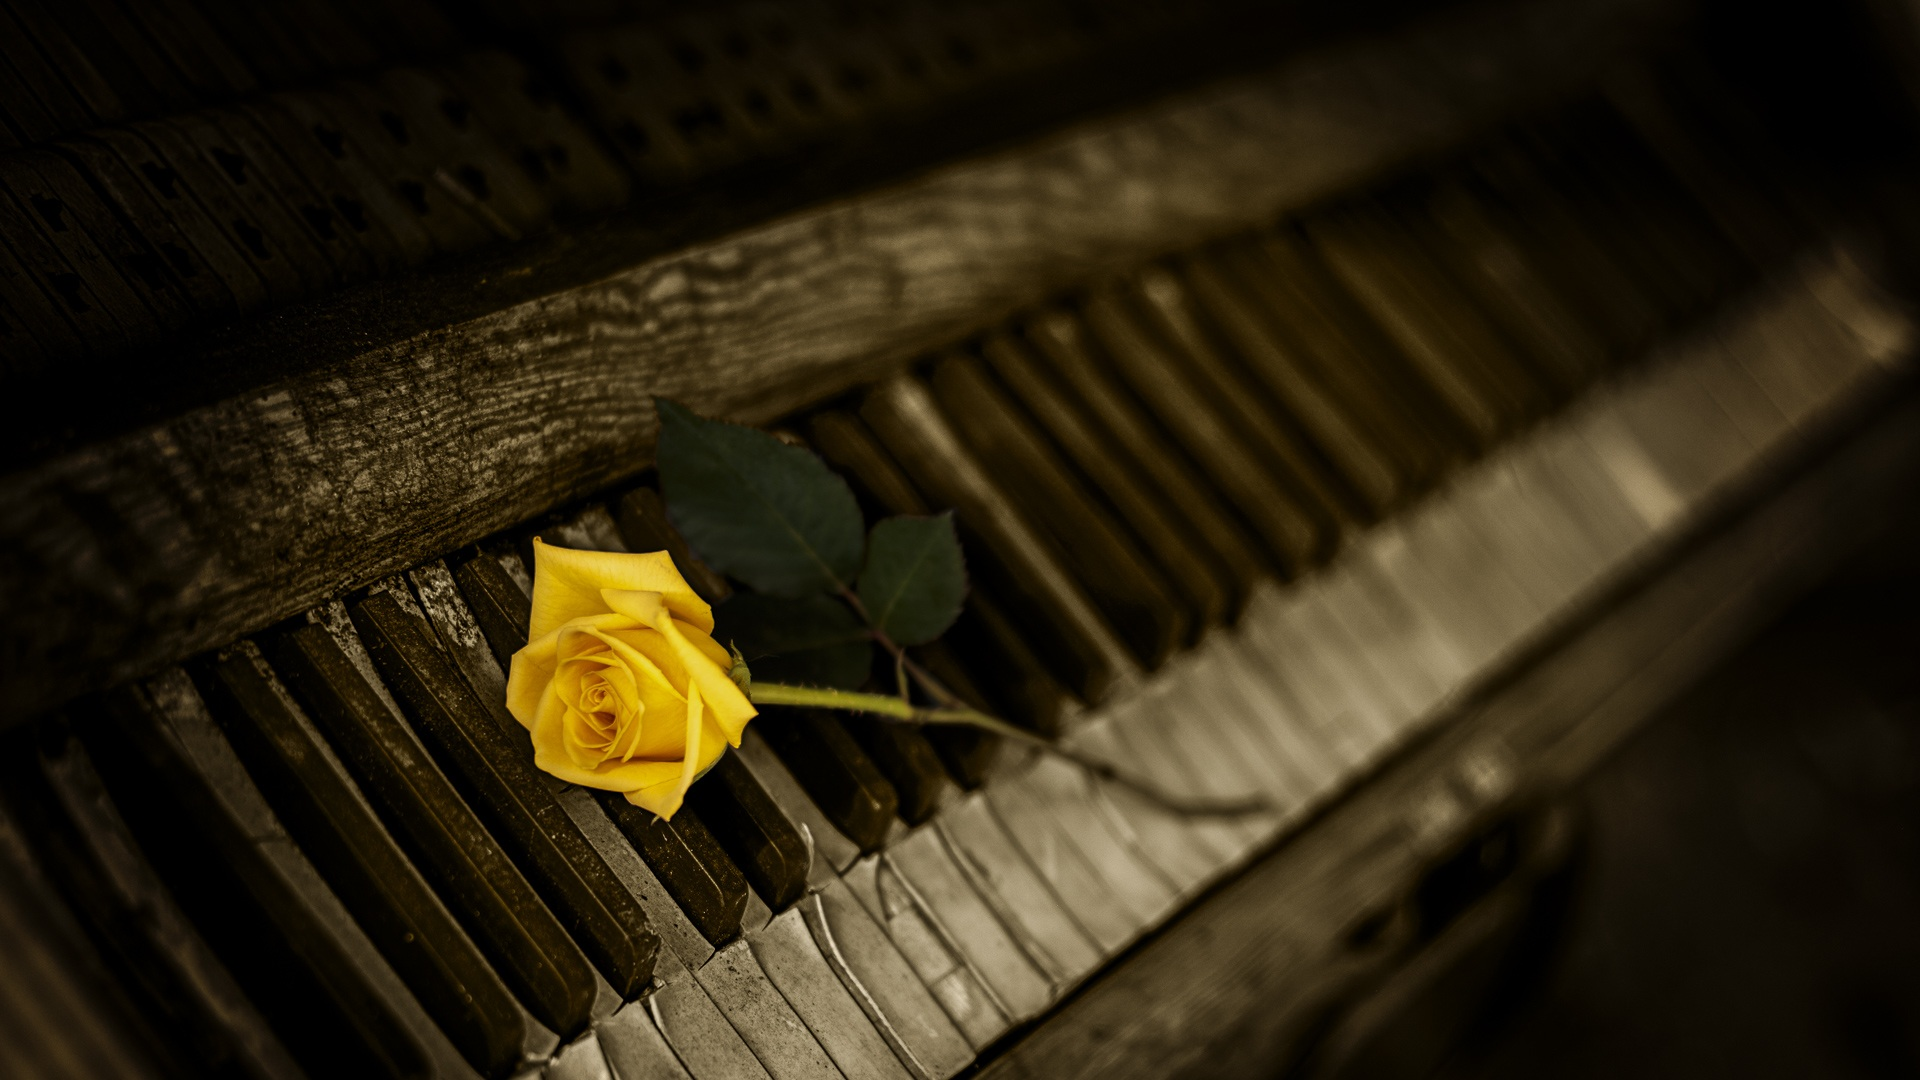 Piano Rose Keys Wallpaper Hd Flowers 4k Wallpapers